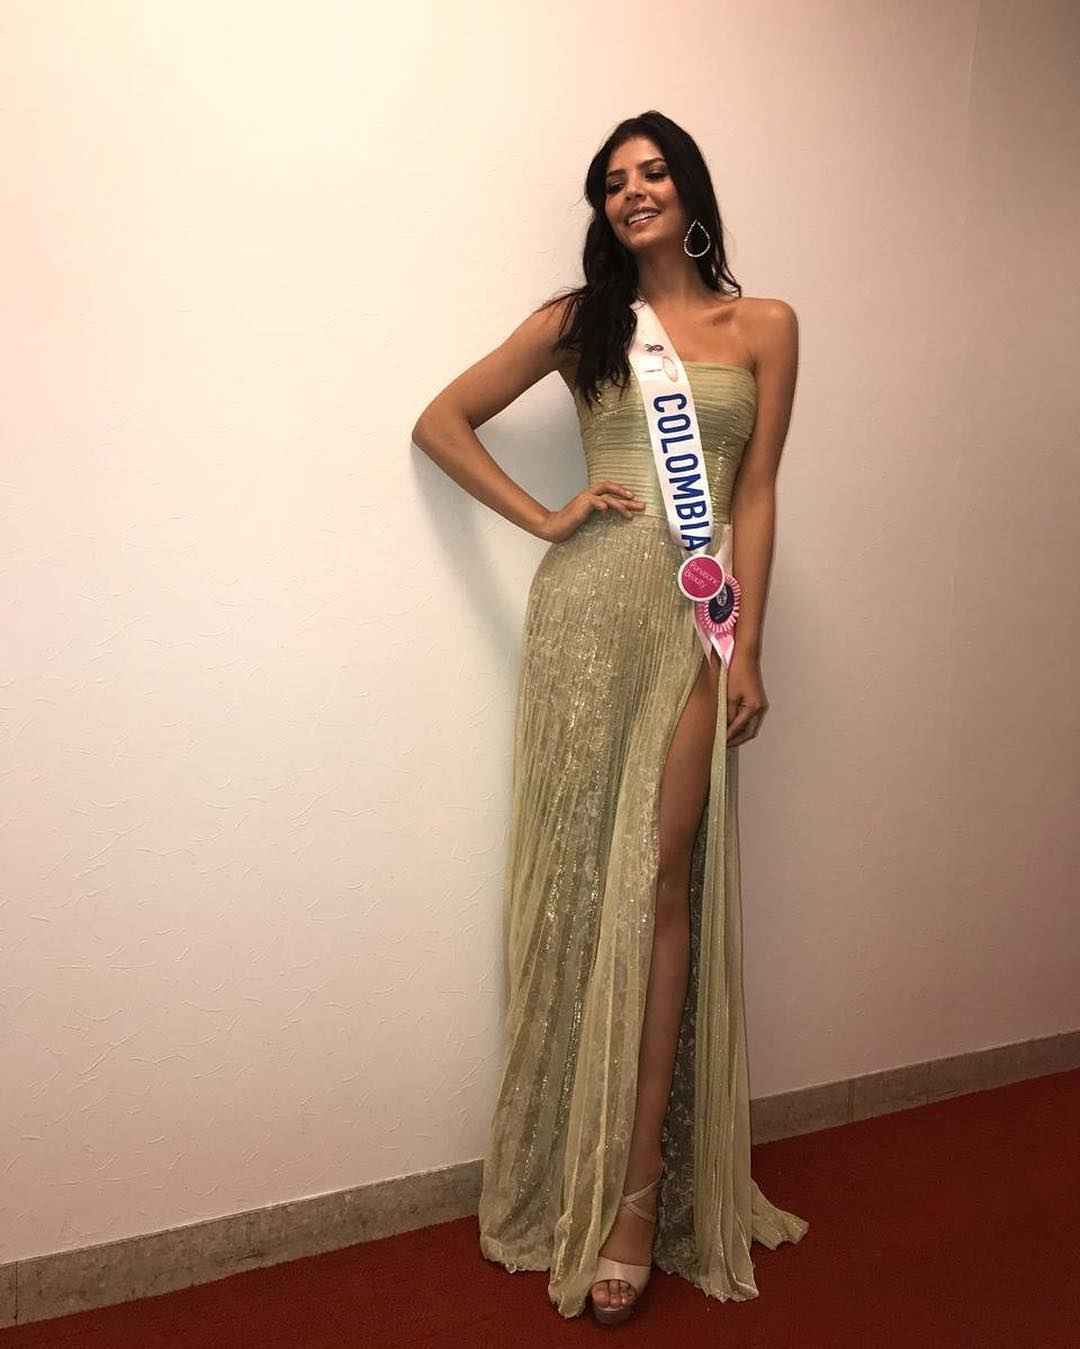 anabella castro, 4th runner-up de miss international 2018. - Página 5 Whel4i10